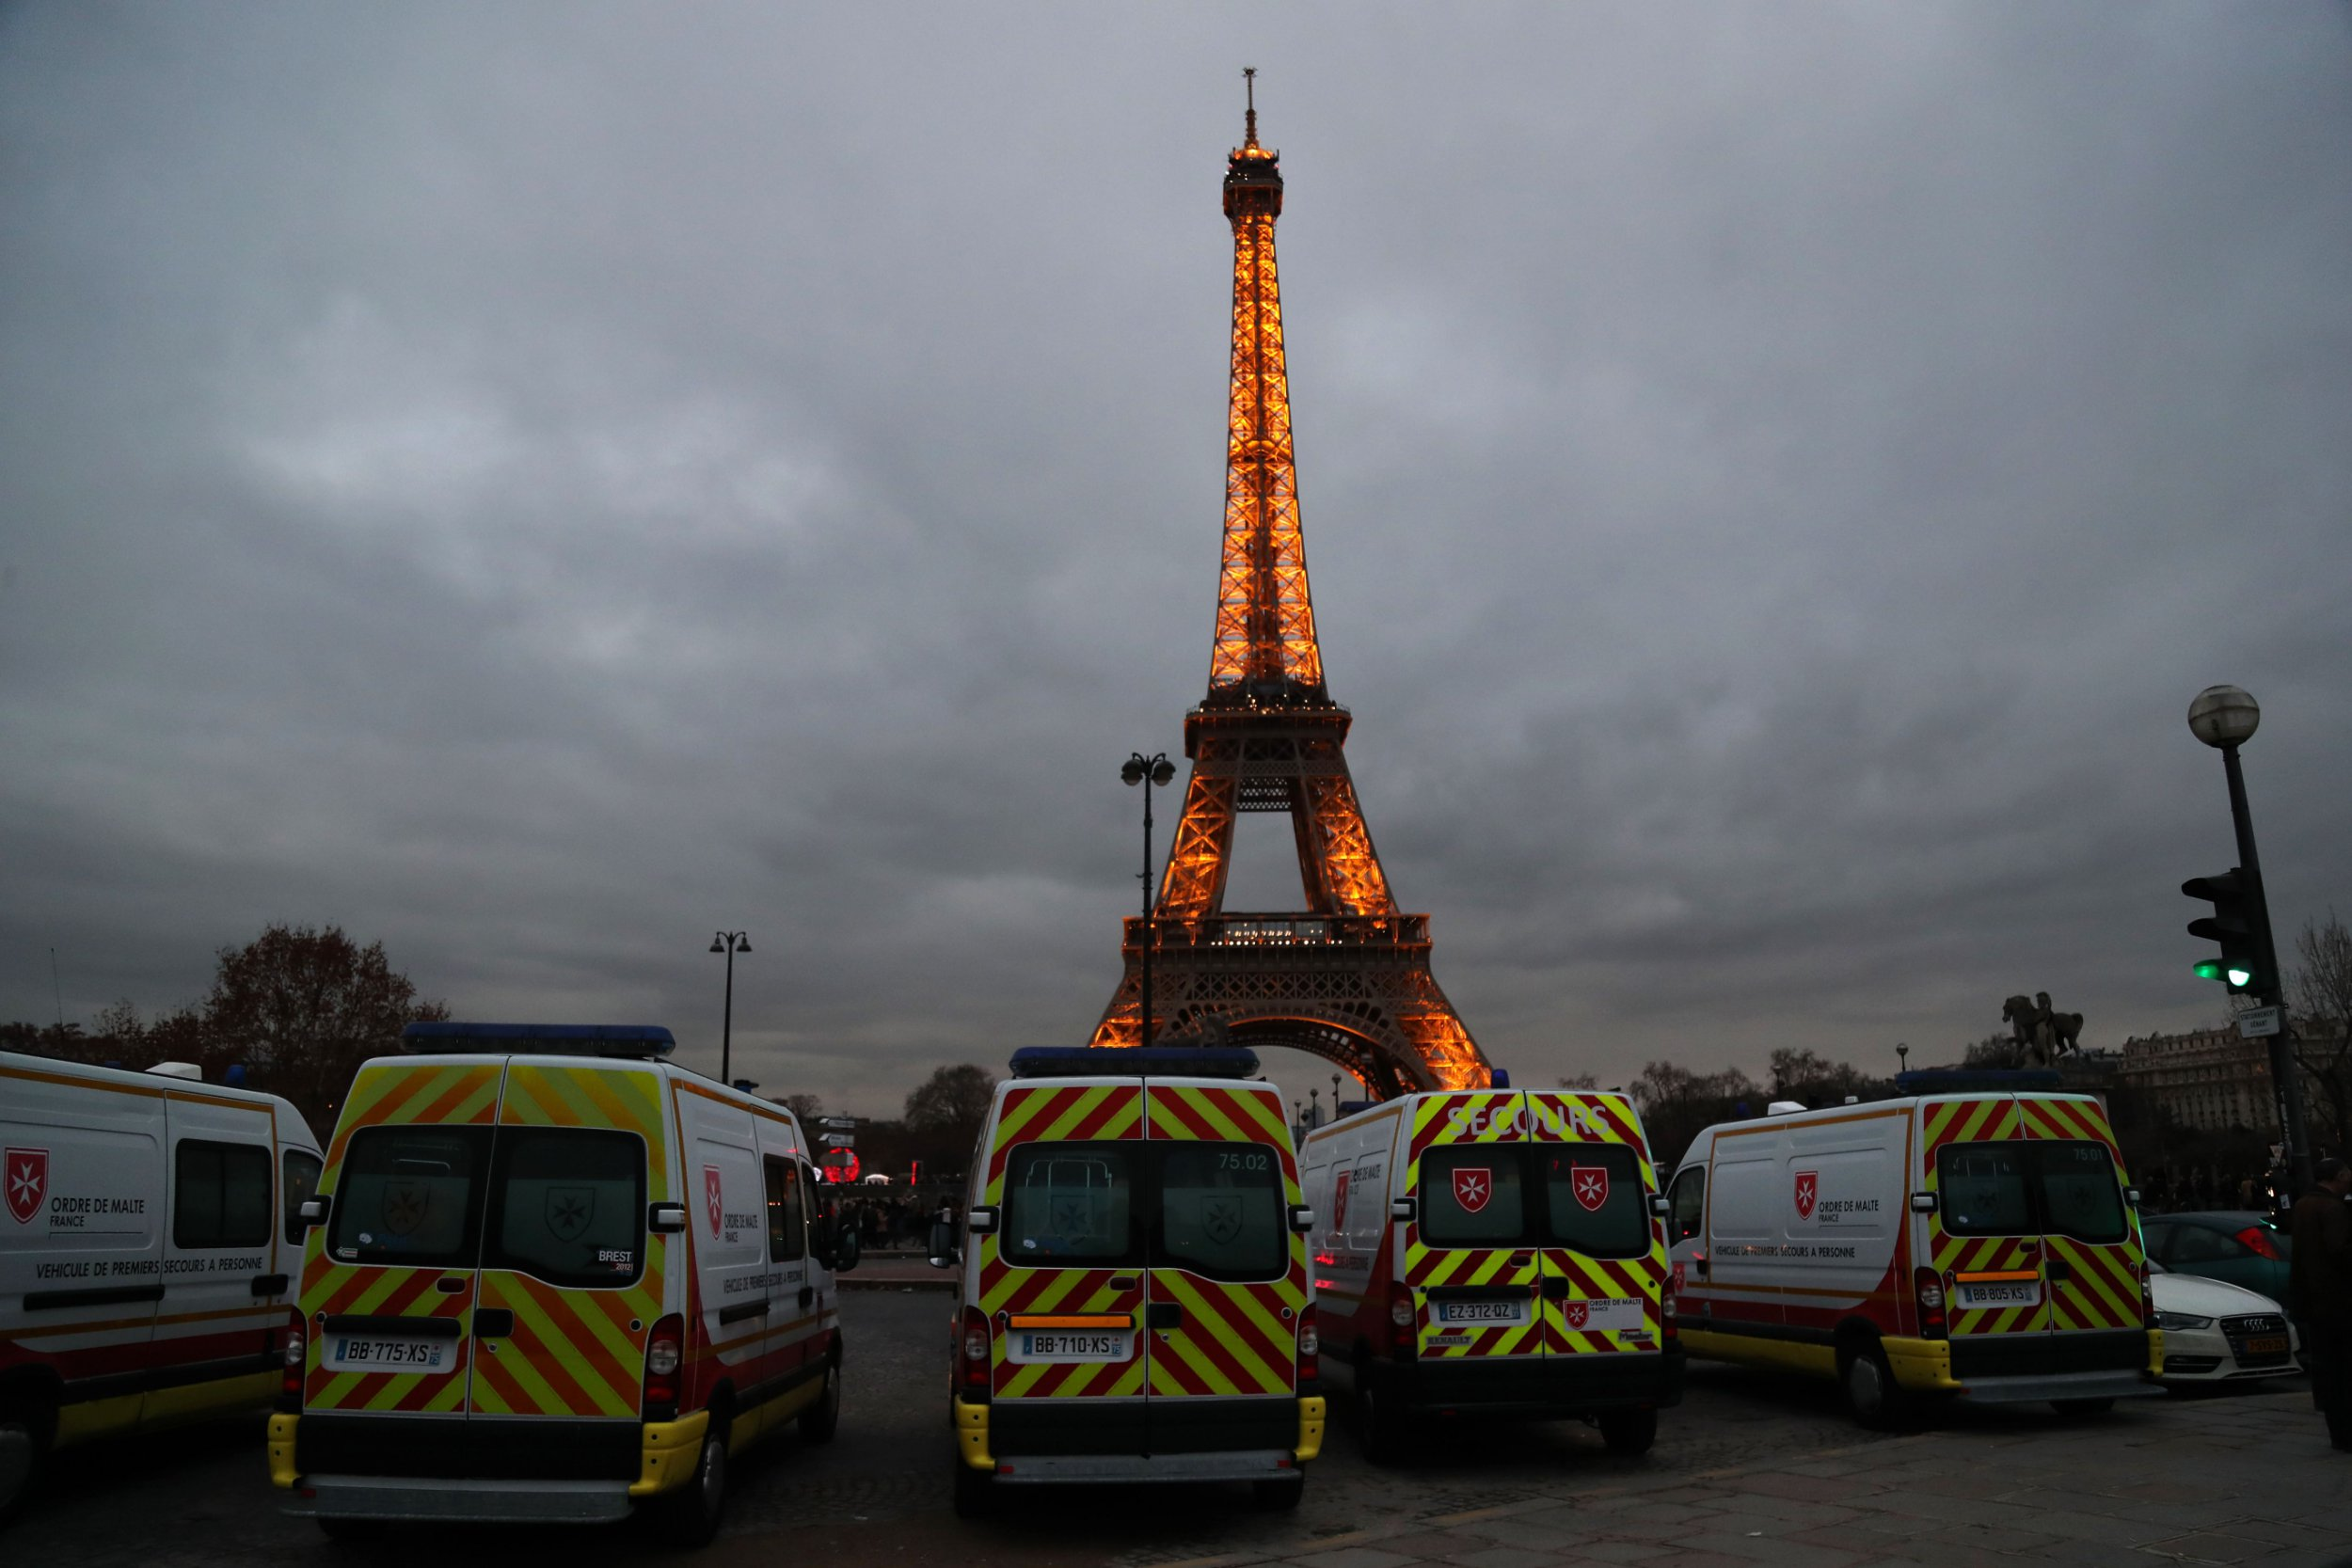 Emergency workers vehicles are parked at the Trocadero gardens with the Eiffel Tower in background, in Paris on December 31, 2018, ahead of the New Year's Eve celebrations. (Photo by Zakaria ABDELKAFI / AFP)ZAKARIA ABDELKAFI/AFP/Getty Images